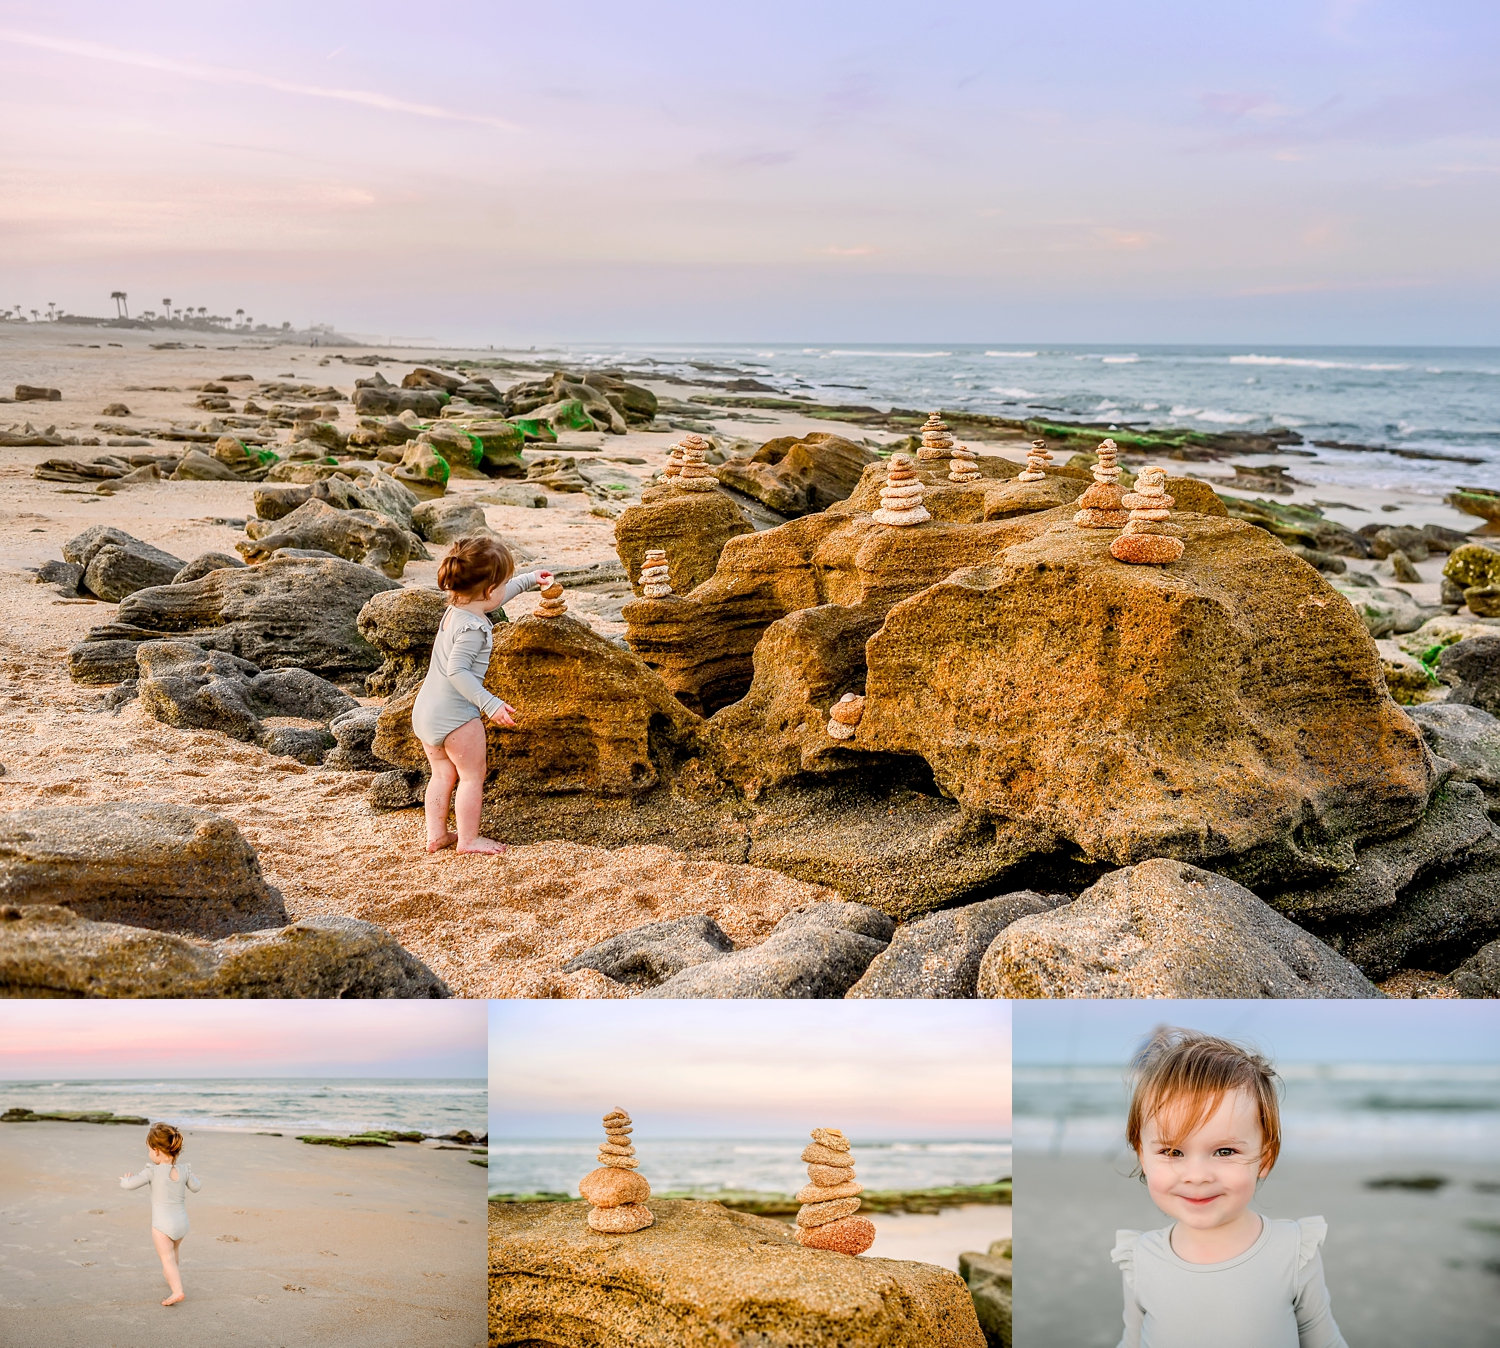 little girl balancing rocks on the beach, photo collage of Florida, Ryaphotos